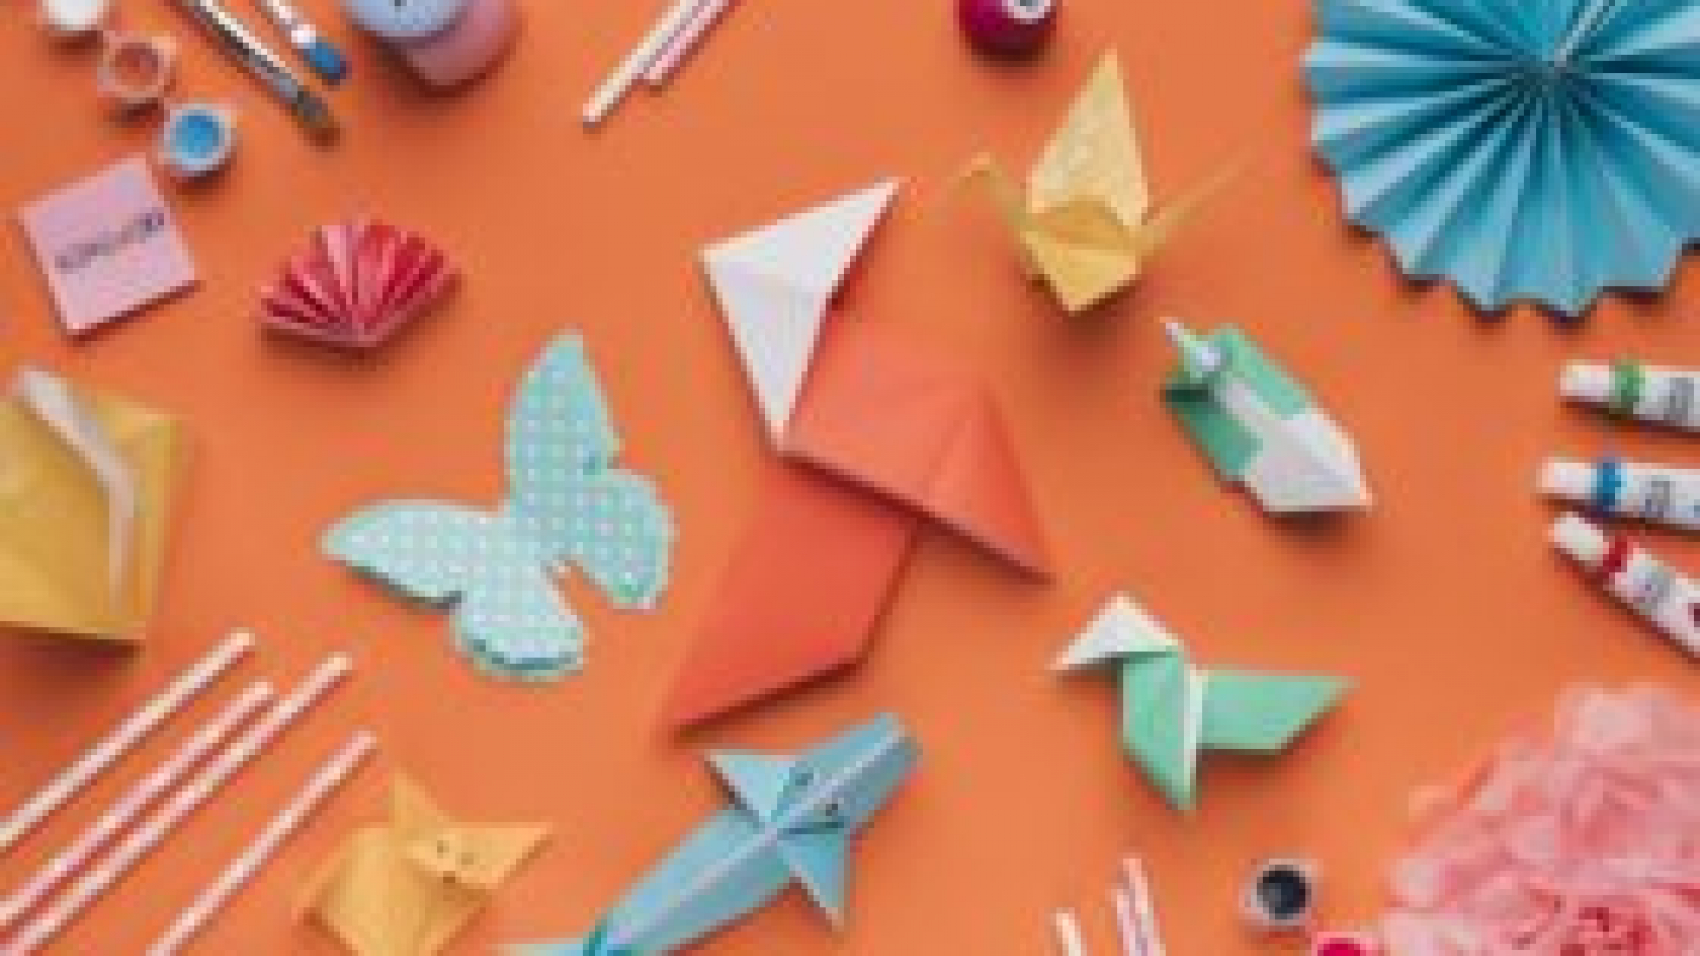 set-of-origami-paper-art-paintbrush-watercolor-and-straw-on-orange-backdrop_23-2148188415-280x180-1